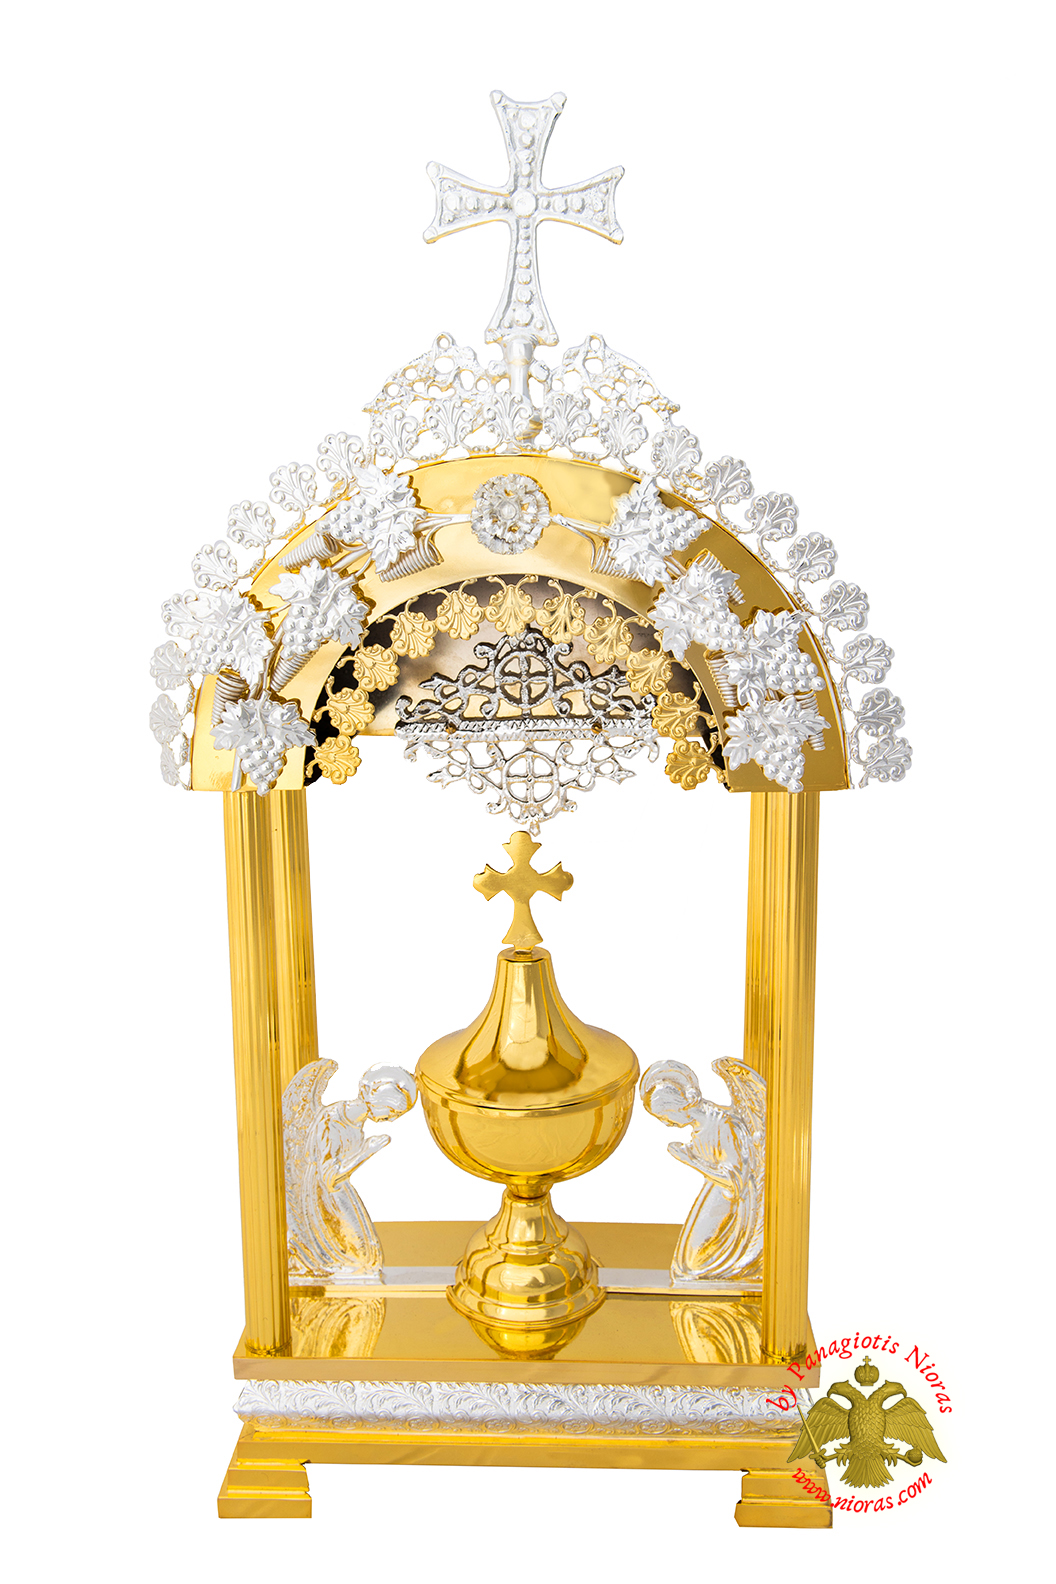 Holy Table Orthodox Tabernacle Arch with Angels Metal Decorations Gold and Silver Plated